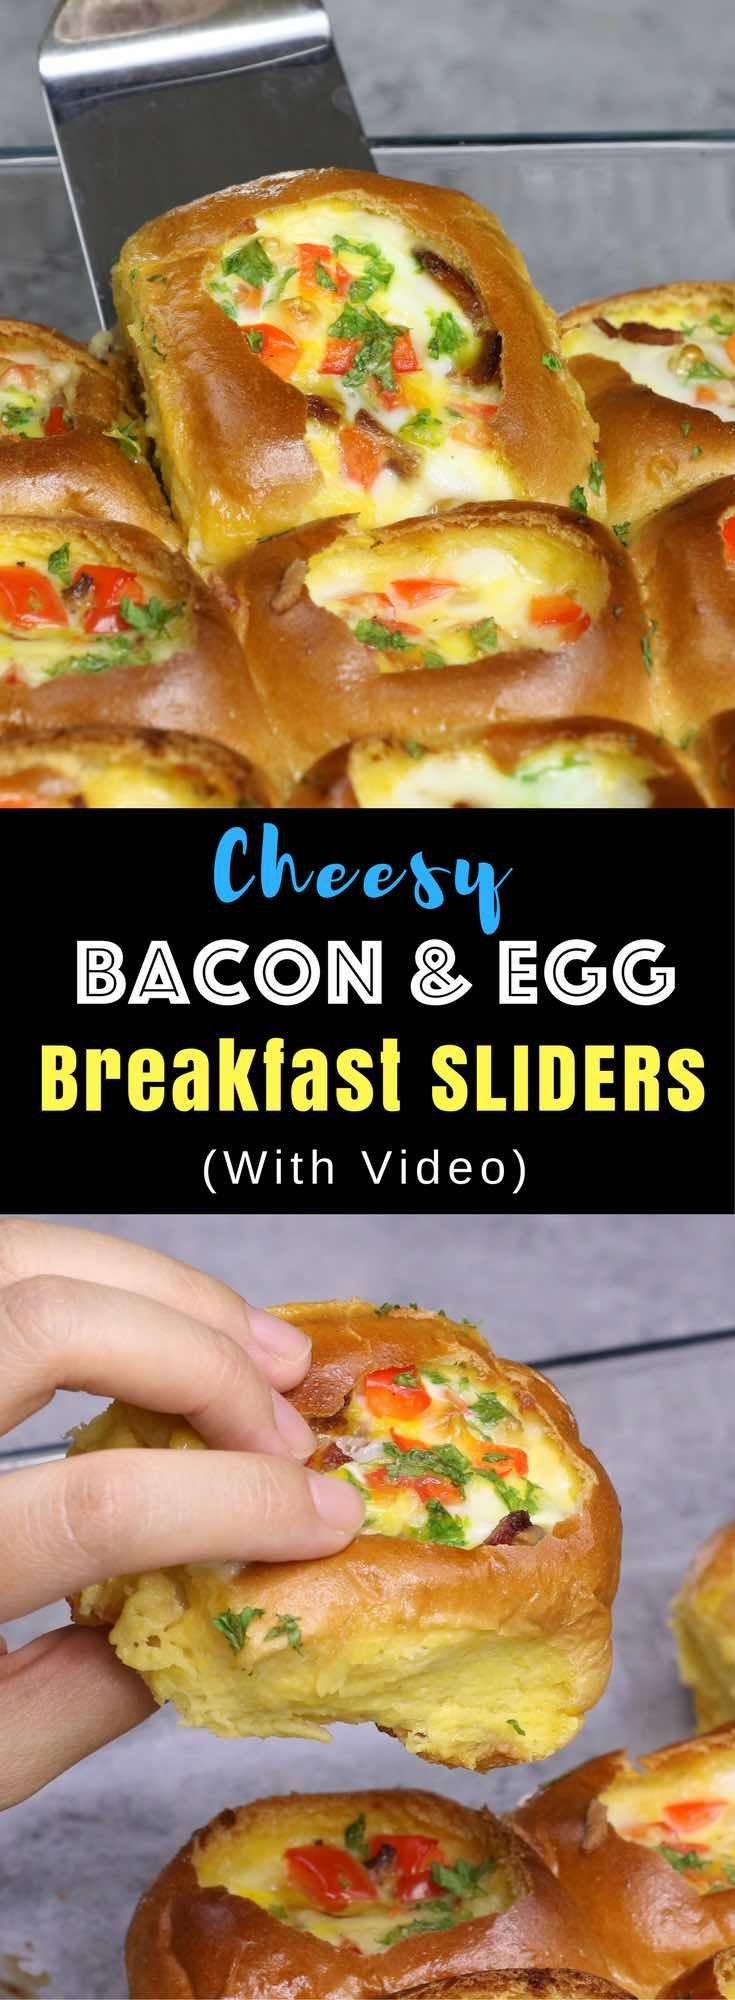 Cheesy Bacon and Egg Breakfast Sliders – Soft and tender sliders are stuffed with bacon, egg, cheese and bell pepper. So delicious! All you need is some simple ingredients: dinner rolls, bacon, egg, cheese, bell pepper, and milk. Great for a weekend brunch or game day party. A perfect pull apart breakfast or brunch of your dreams! Quick and easy recipe. Video recipe. | Tipbuzz.com